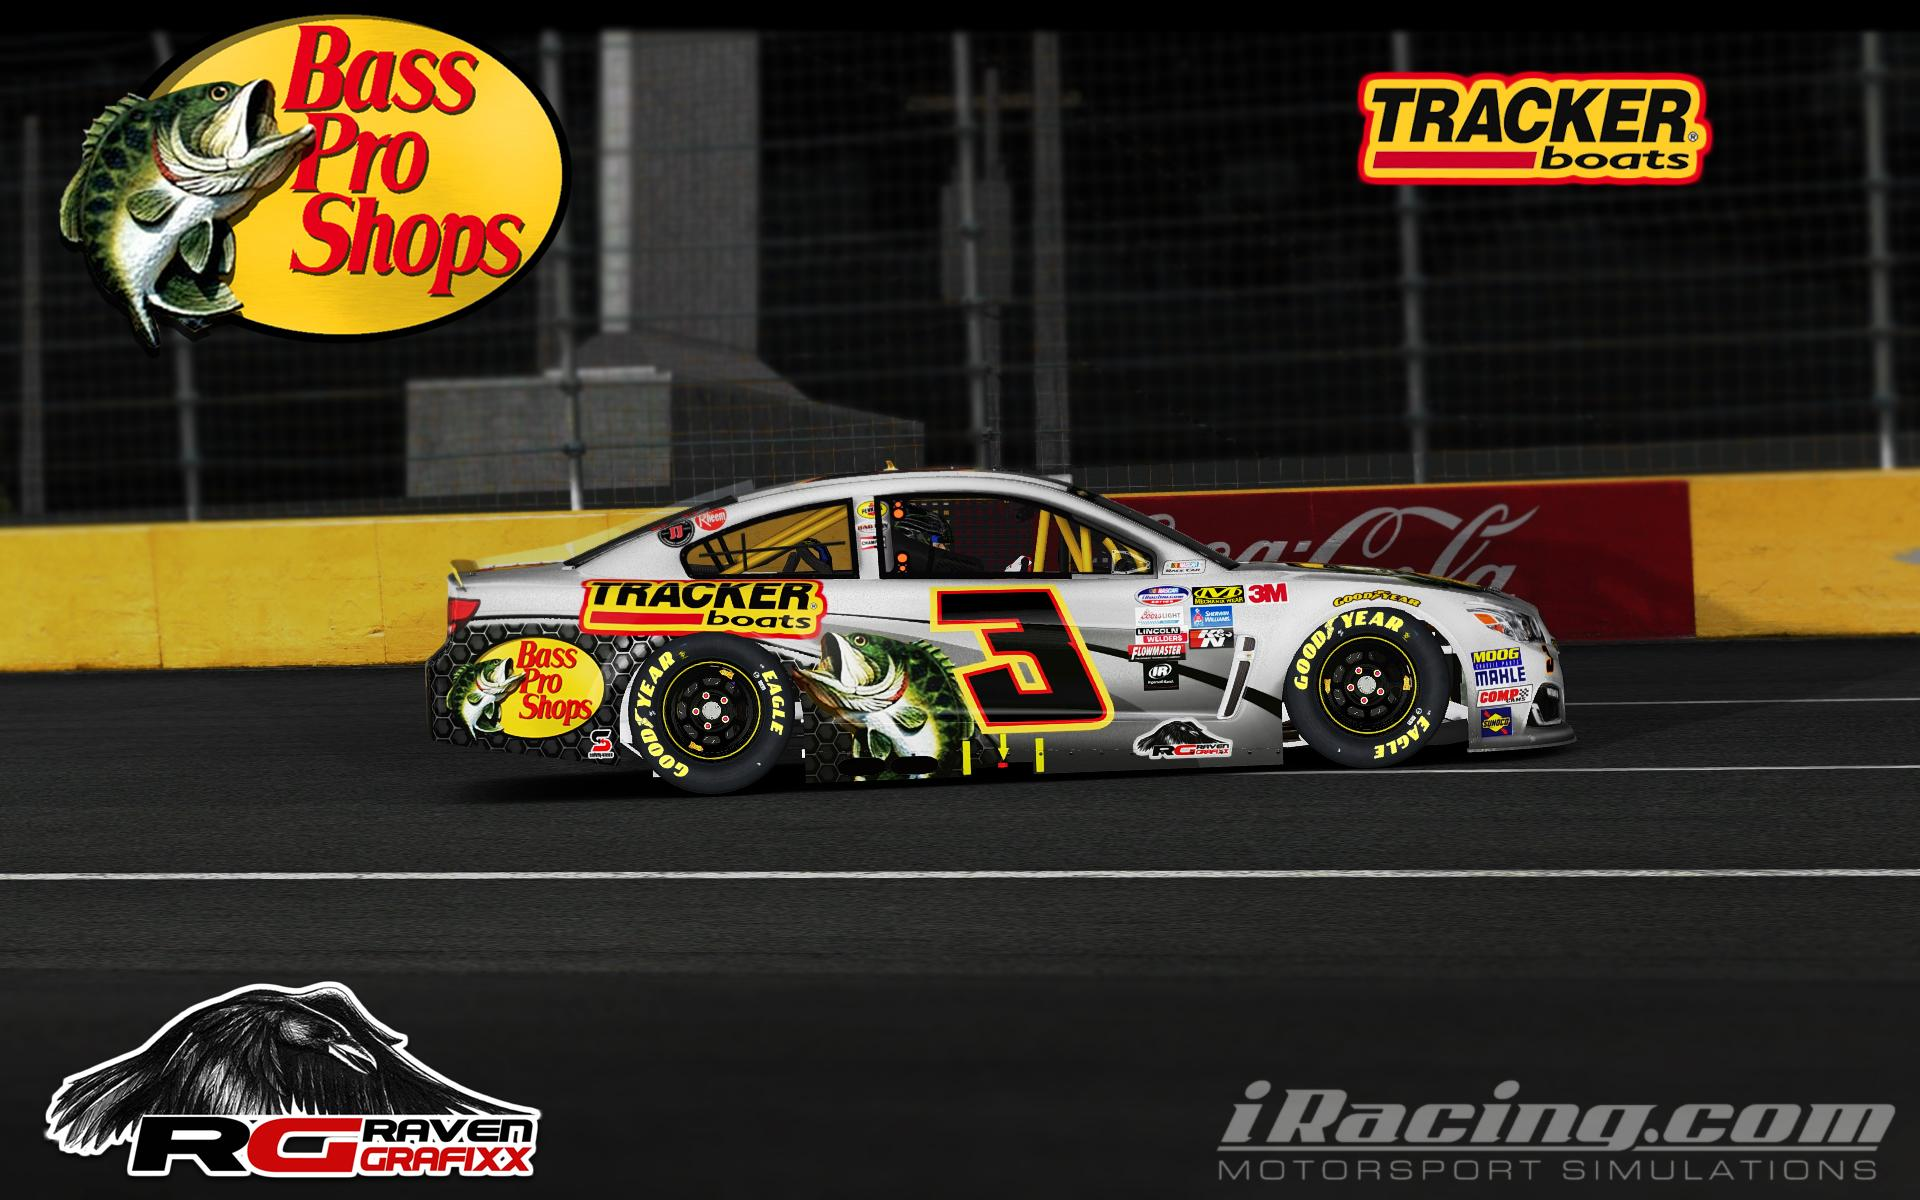 Preview of BassPro Chevrolet SS 2048 2017 Tracker metalic by Doyle Lowrance